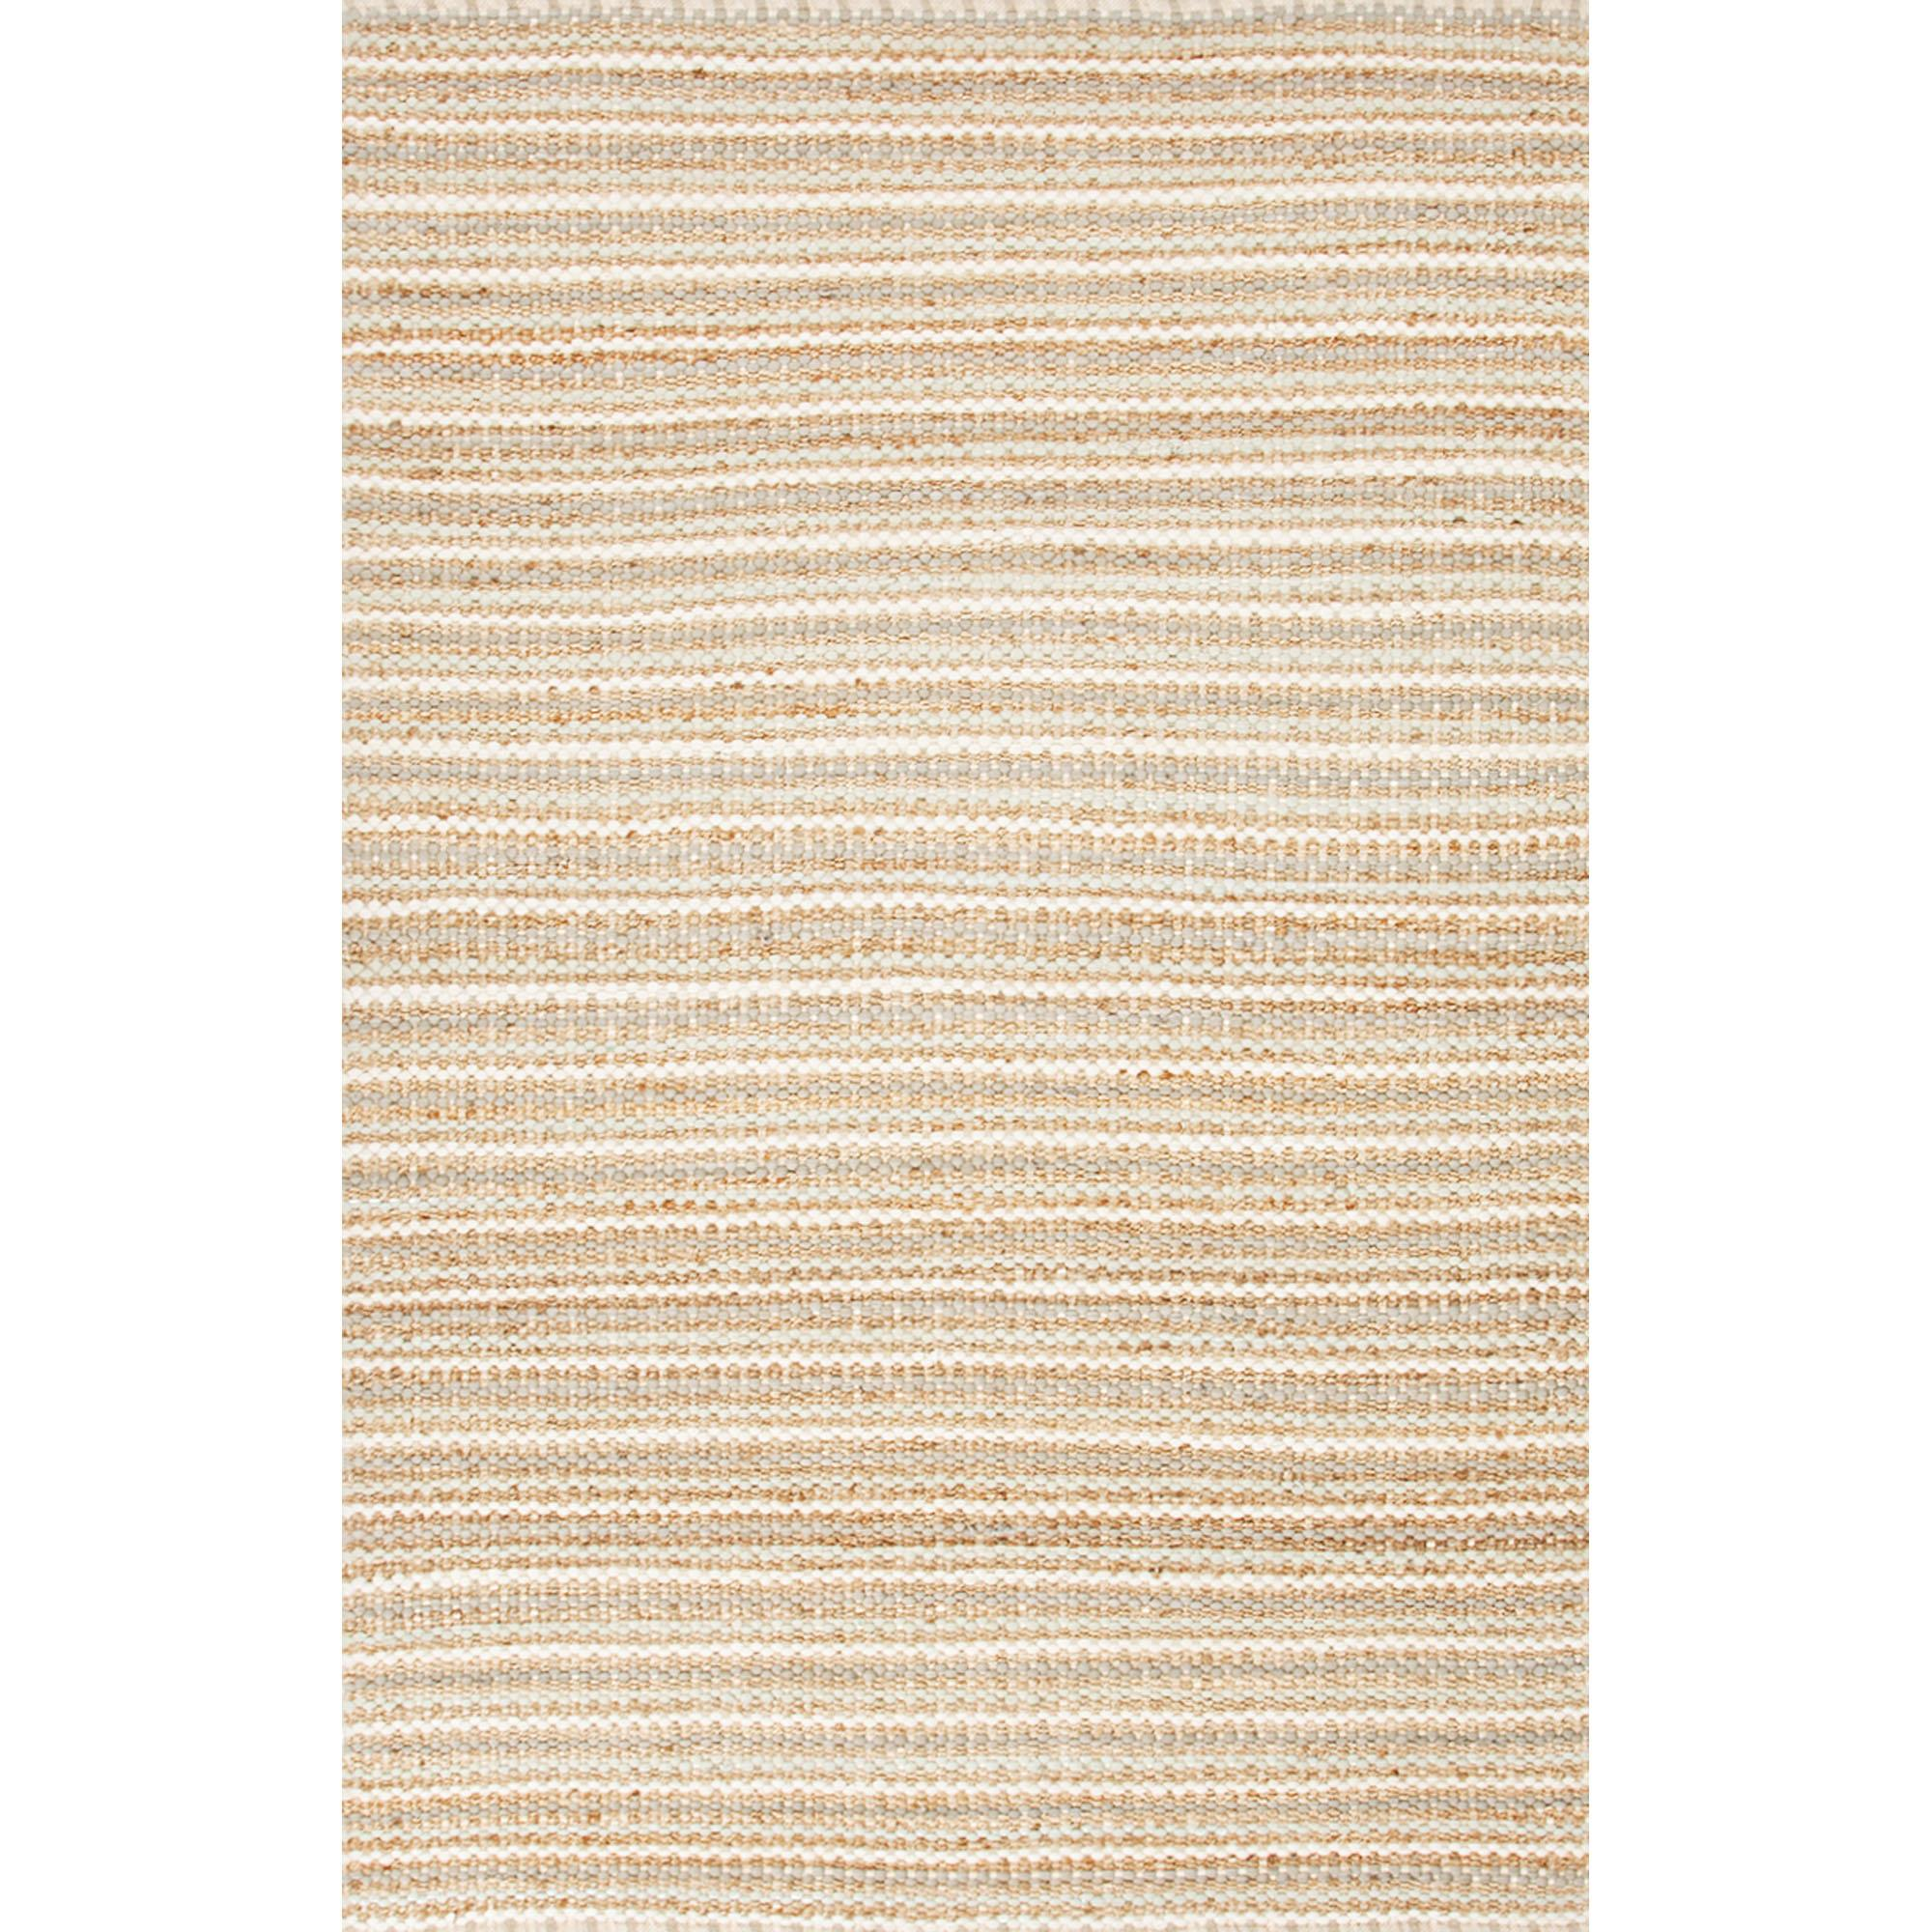 Andes 9 x 12 Rug by JAIPUR Rugs at Sprintz Furniture